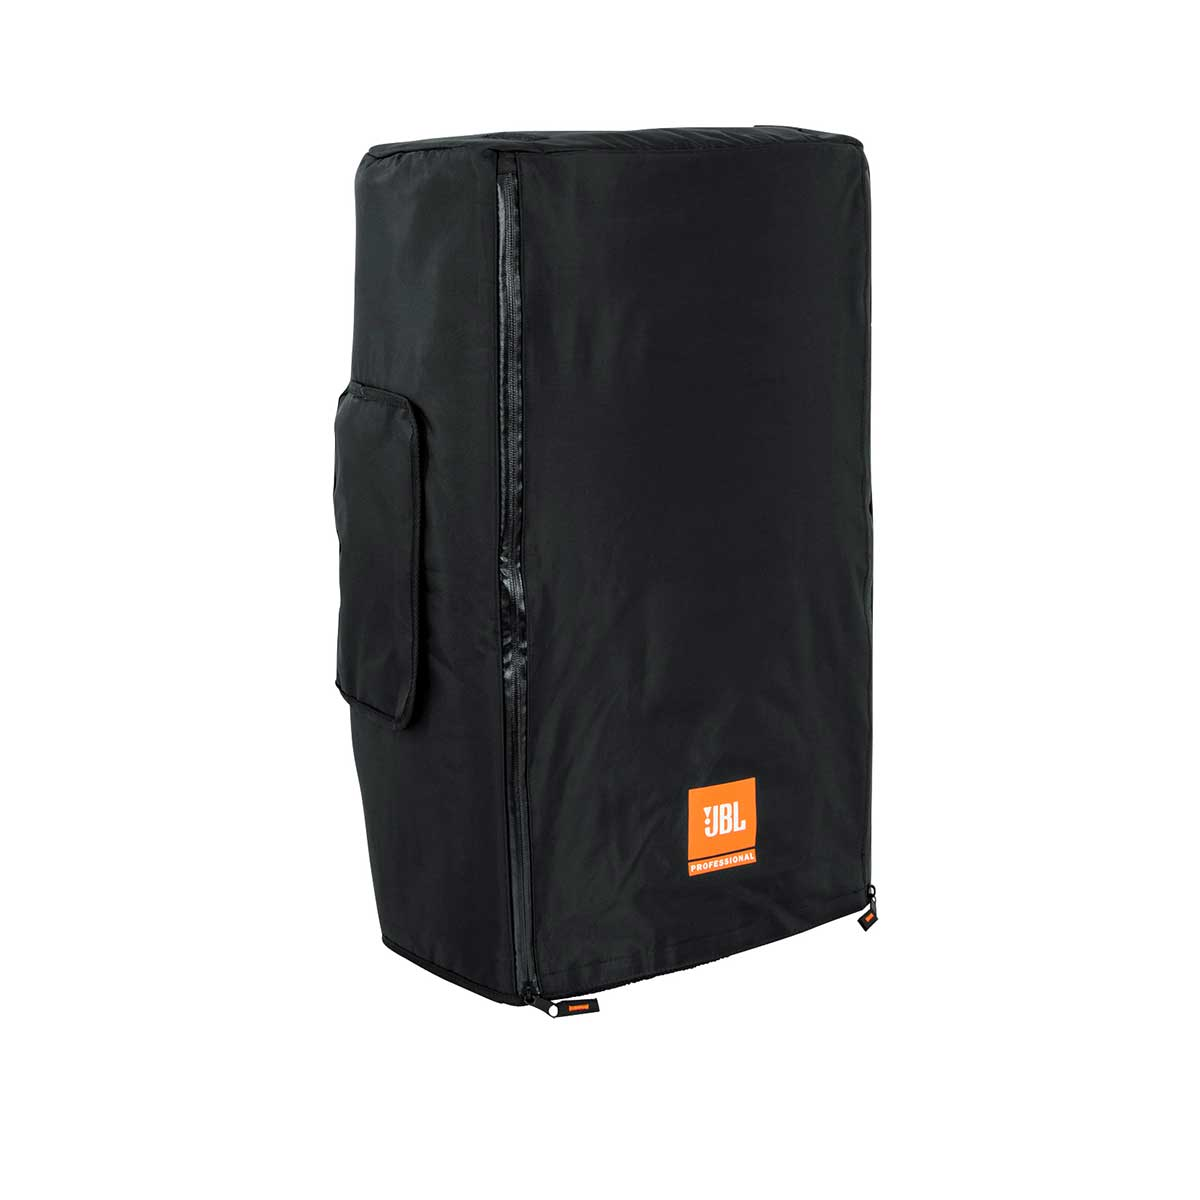 JBL EON615CVRWX All Weather Cover for Eon 615